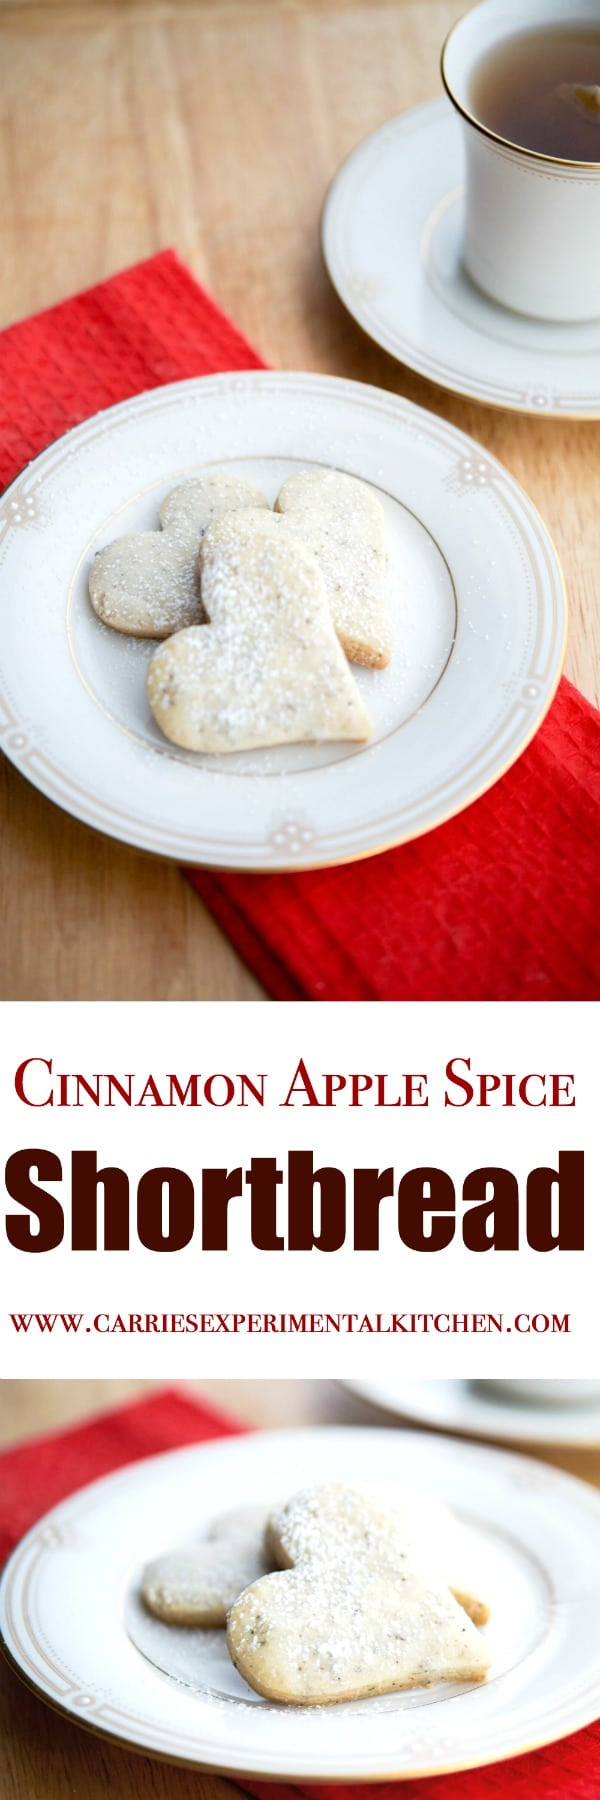 Cinnamon Apple Spice tea leaves add a Autumnal twist to your favorite shortbread cookie.